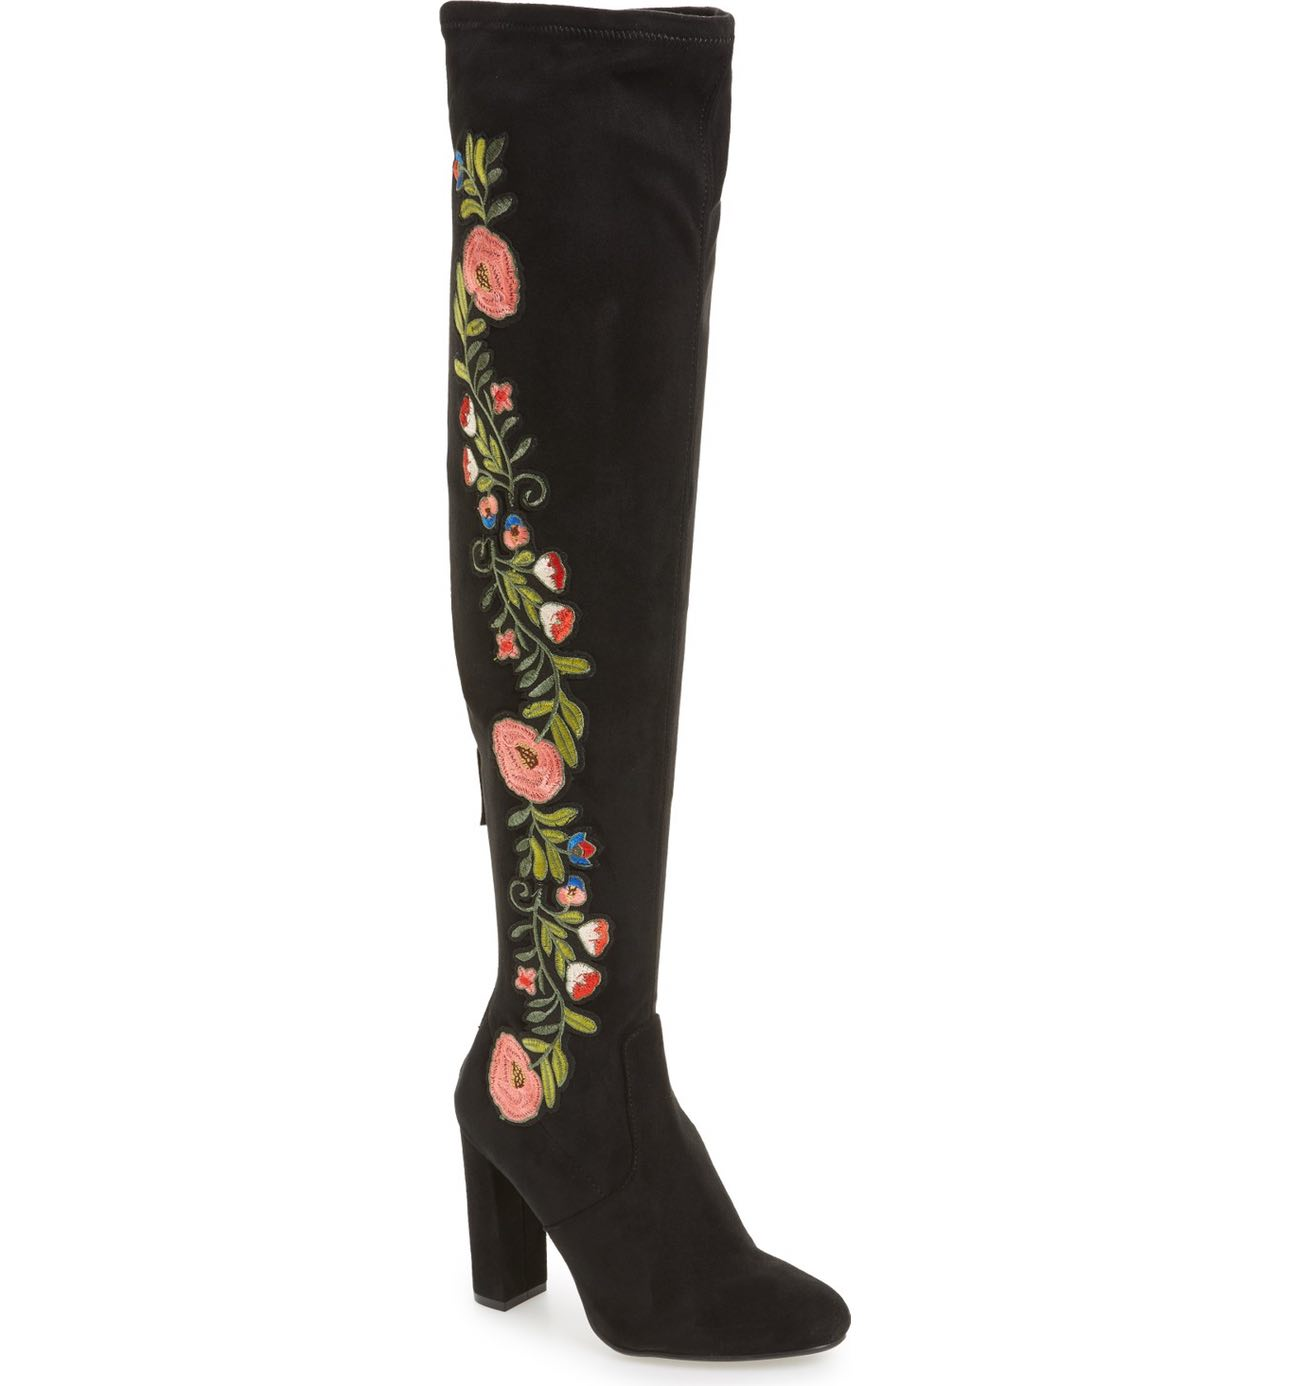 When I saw Steve Madden's Envoke Over the Knee Stretch Boots ($159.95), I died and went to Coachella heaven.  I want these.  We should all want these.  Pair with a flowey dress, or black leggings with an over-sized jean shirt and black wrap scarf. Bring out your inner hippie.  (Image: Nordstrom)